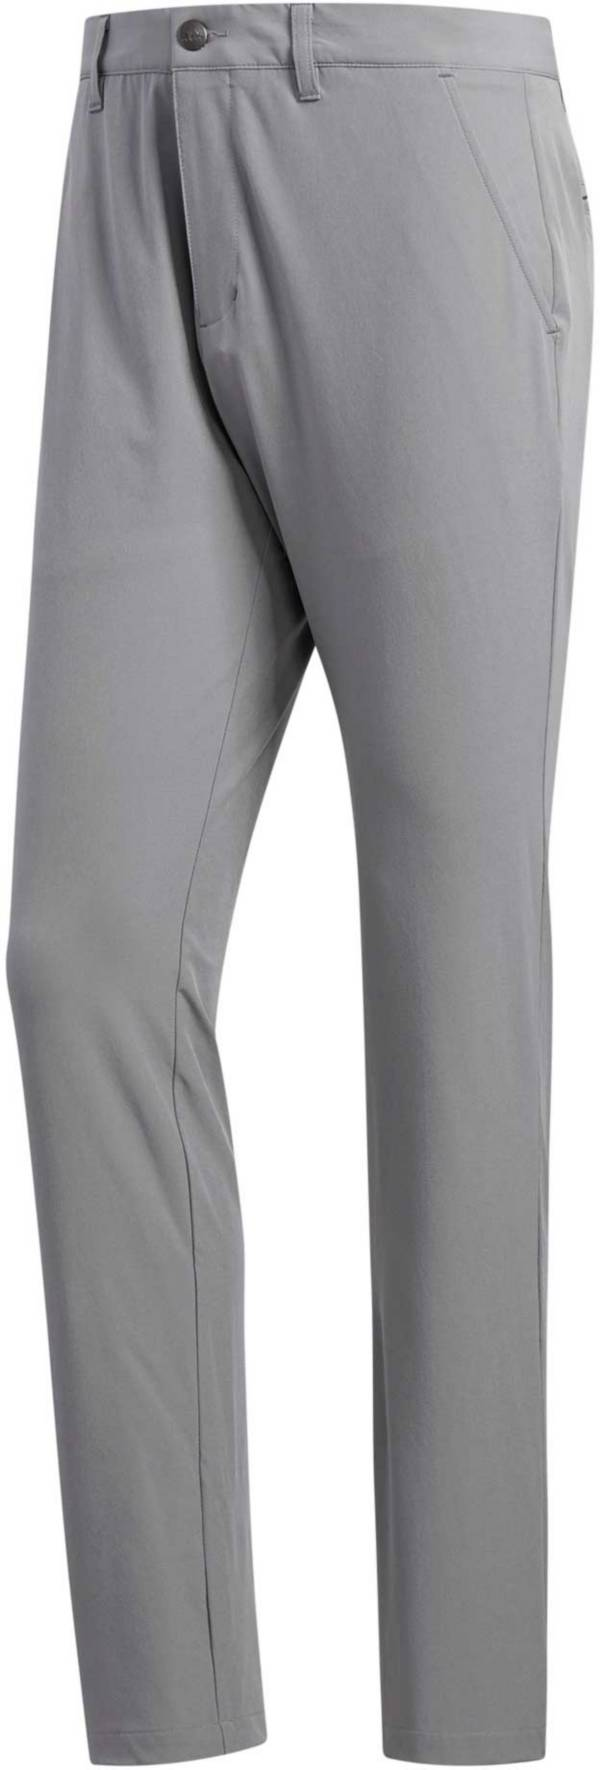 Adidas Men's Ultimate365 Tapered Pants product image